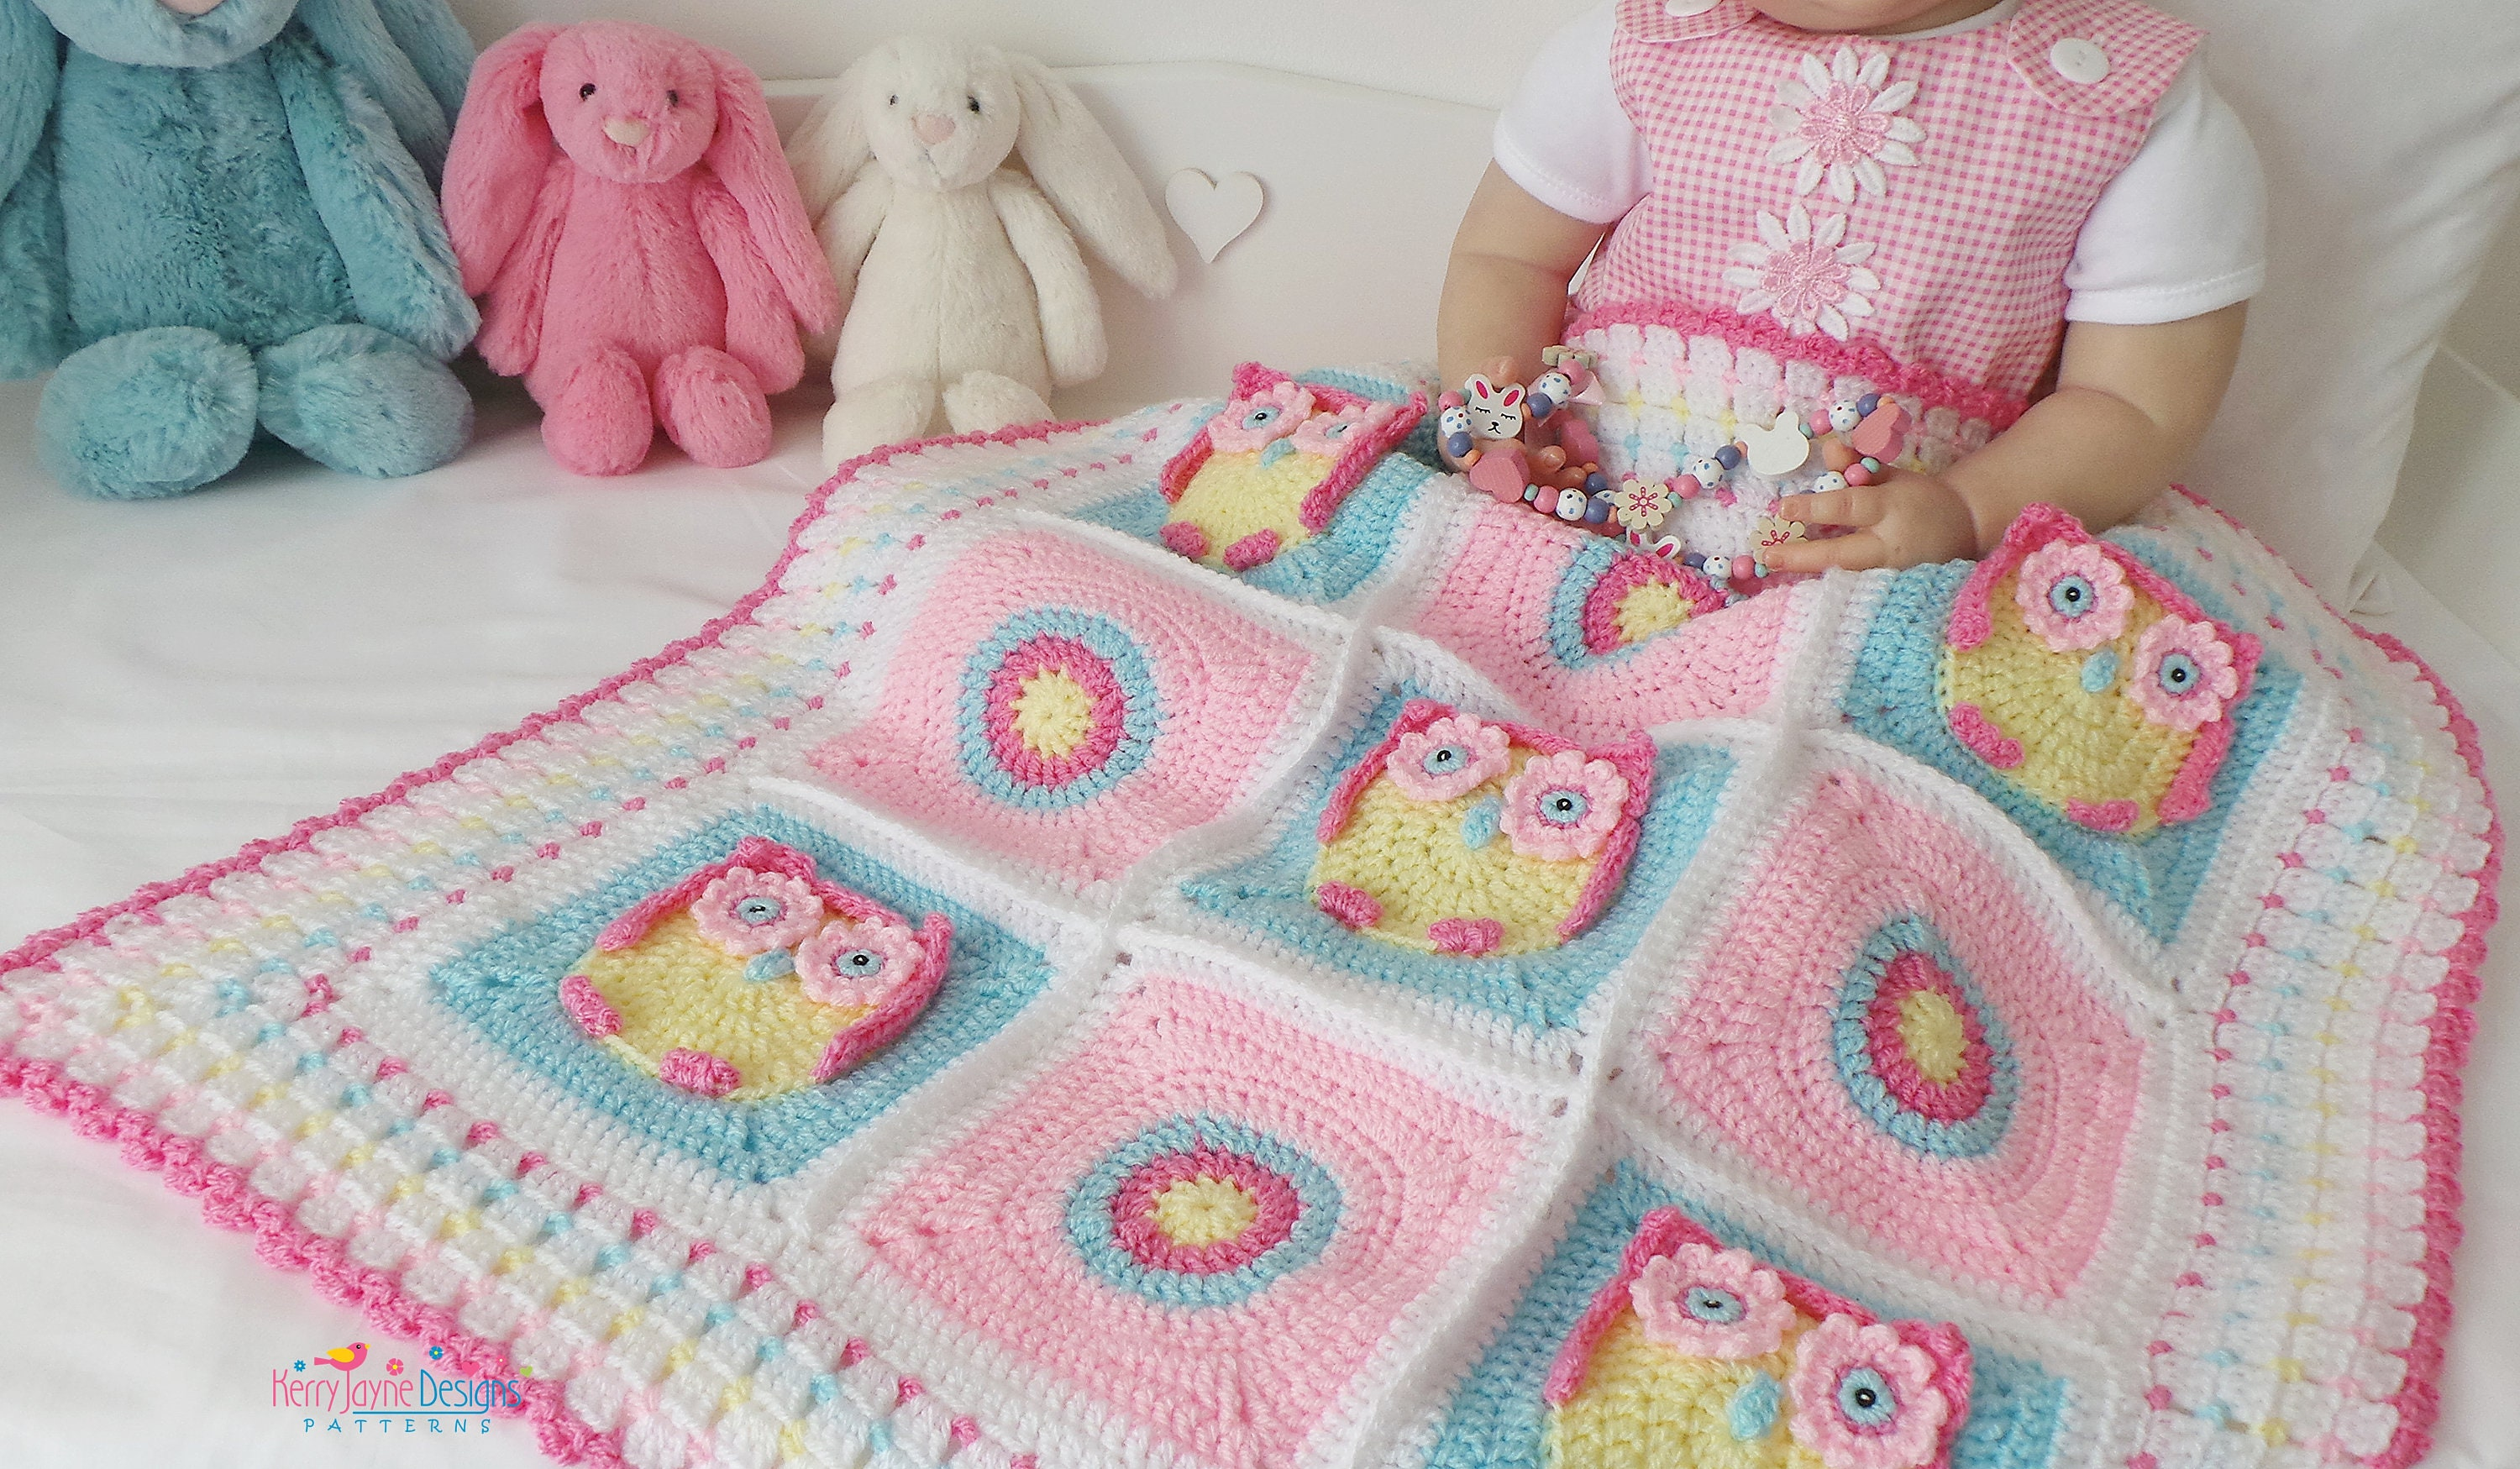 CROCHET PATTERN - Kerry\'s Owl Blanket - Crochet Owl Blanket Pattern ...